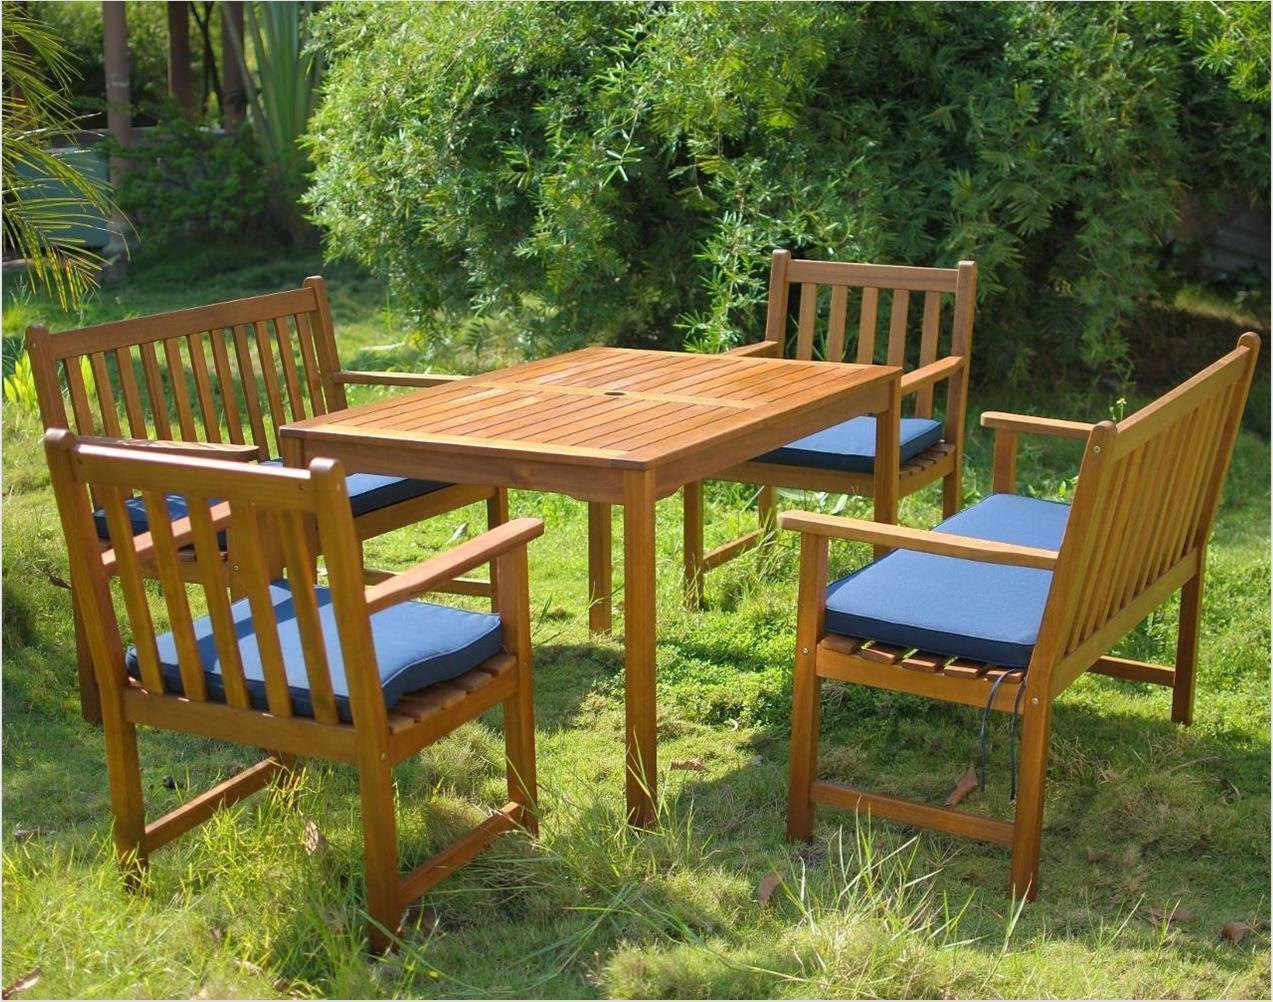 6 Seater Patio Set with Cushions - Simply Wood